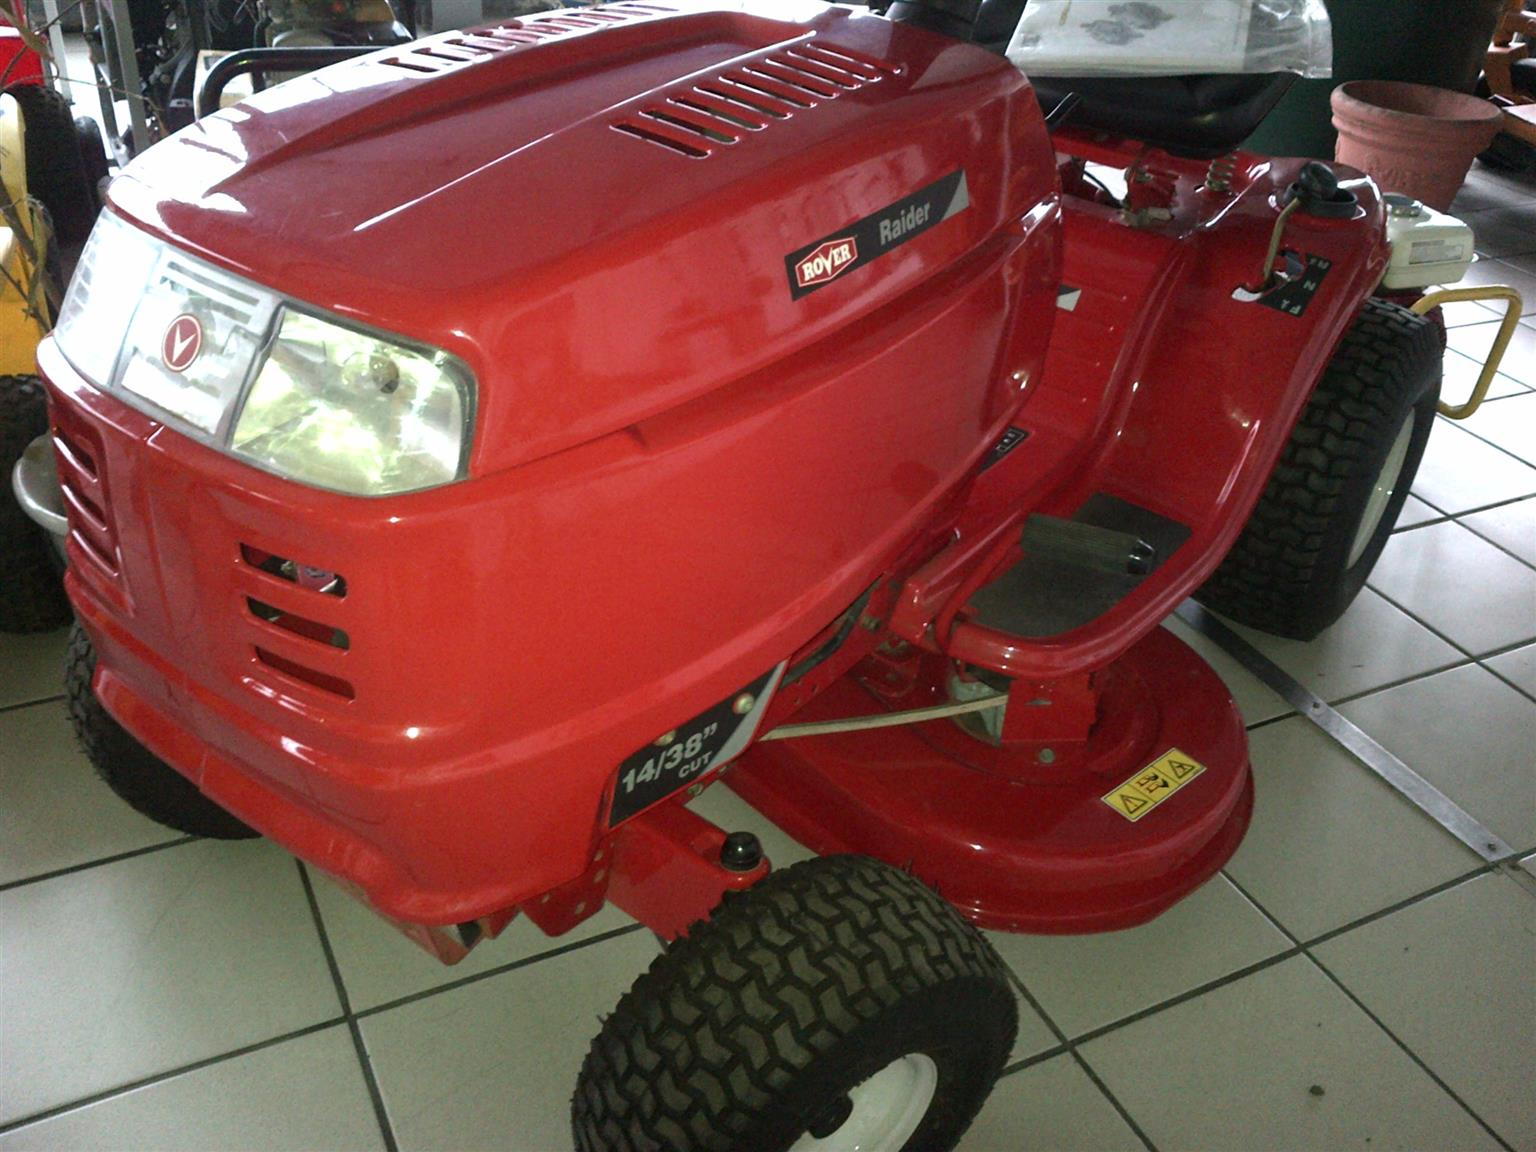 TRACTOR SPARES/PARTS/TYRES/ENGINE PARTS,COVERS/PANEL/RIDE ON LAWN MOWERS ECT @CLIVES IMPORTS